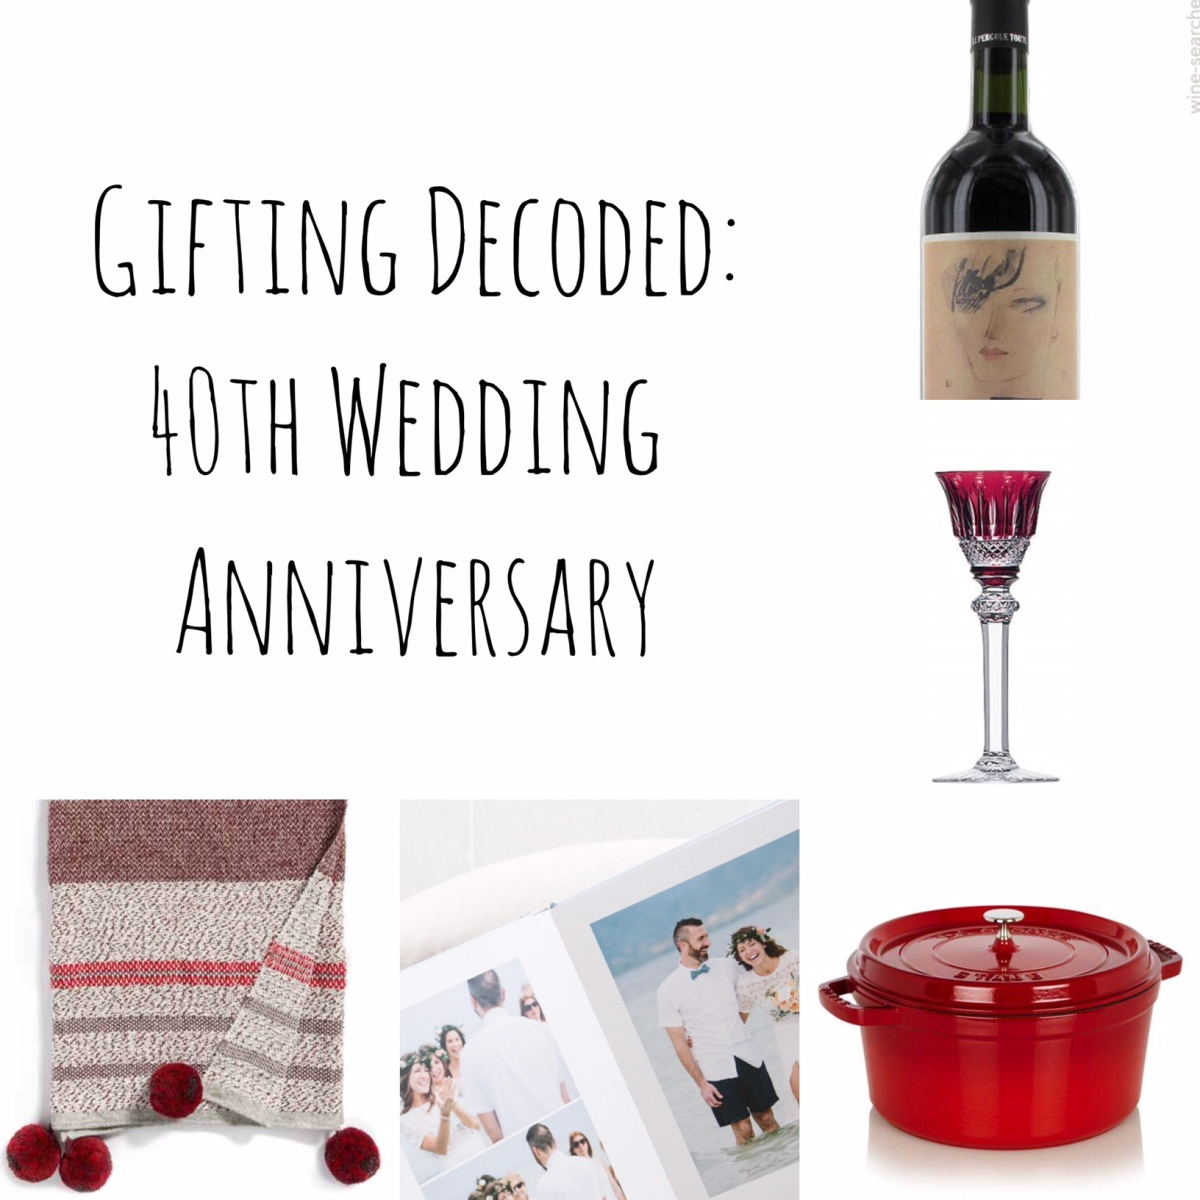 Gifting: Decoded - 40th Wedding Anniversary